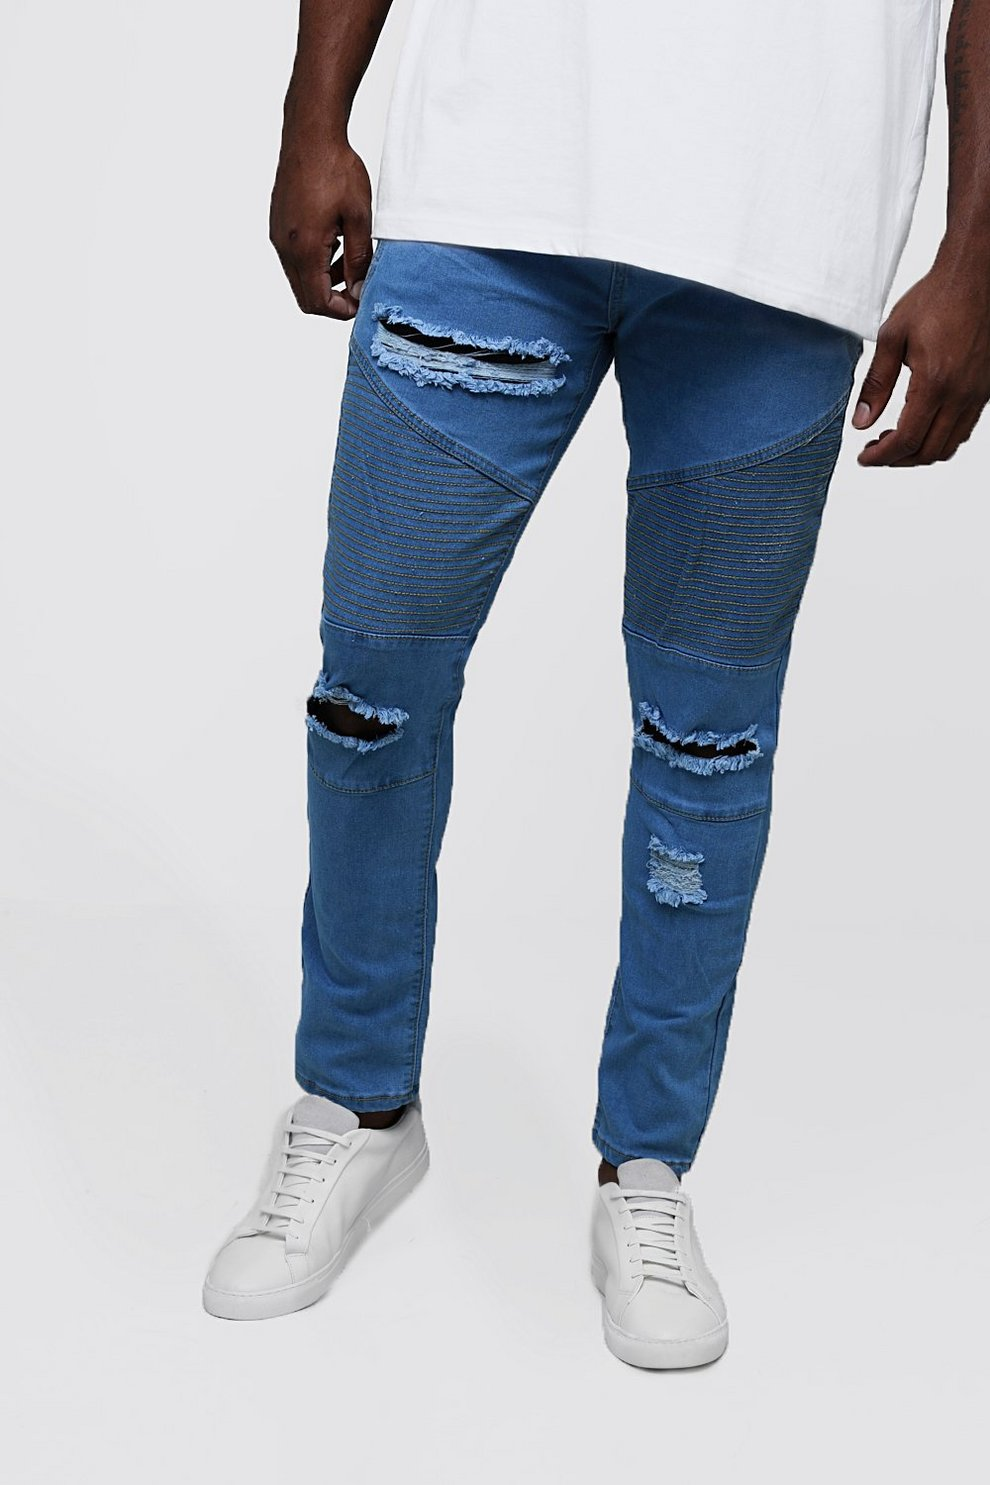 9408a6bcd6c54 Mens Pale blue Big & Tall Skinny Fit Ripped Biker Jeans